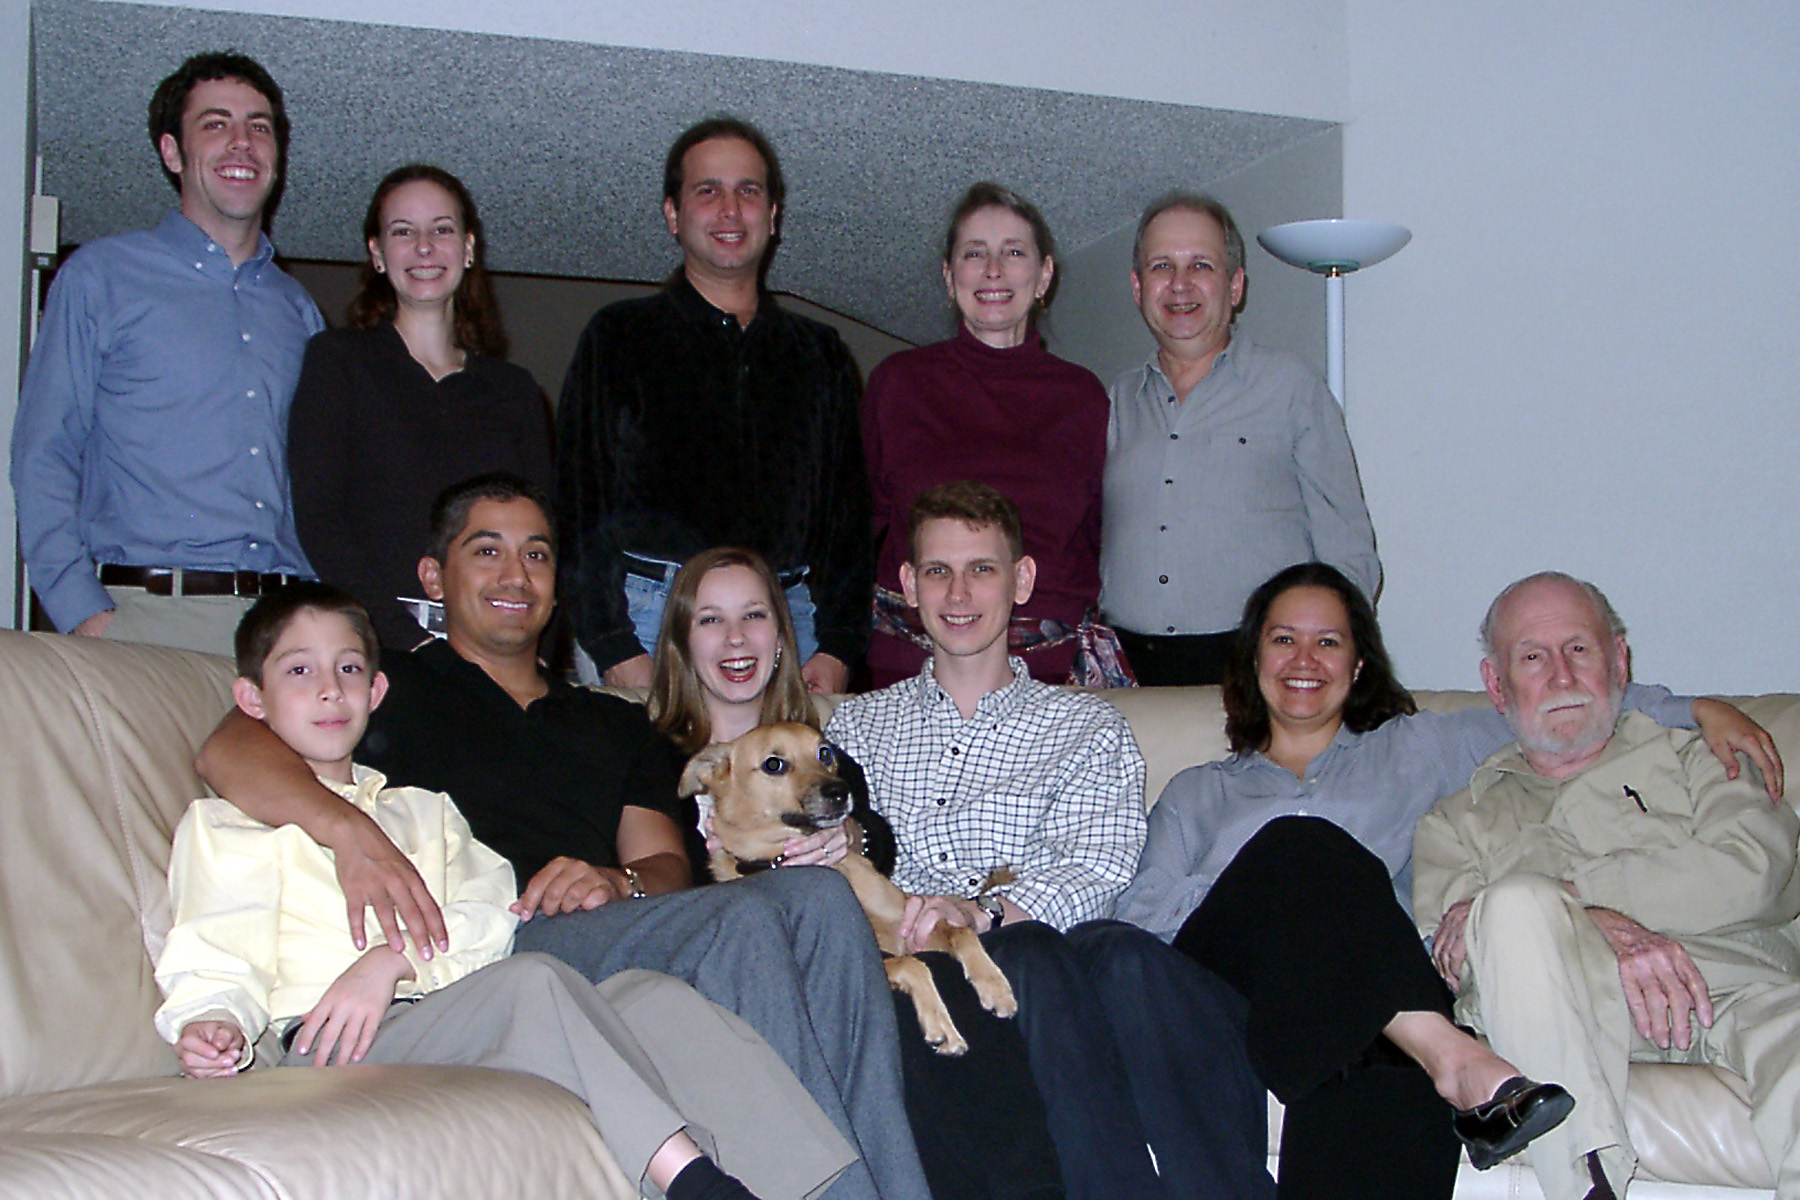 Thanksgiving 2002, (L-R) Standing: Bryan Shepherd, Beth Shepherd, Jeff Mayoff, Denise Mayoff, Bernie Mayoff. Sitting: Richard Navarrete Jr., Richard Navarrete, Cheryl Mayoff, Grommit, Rob Mayoff, Delia Hoker, George Hoker